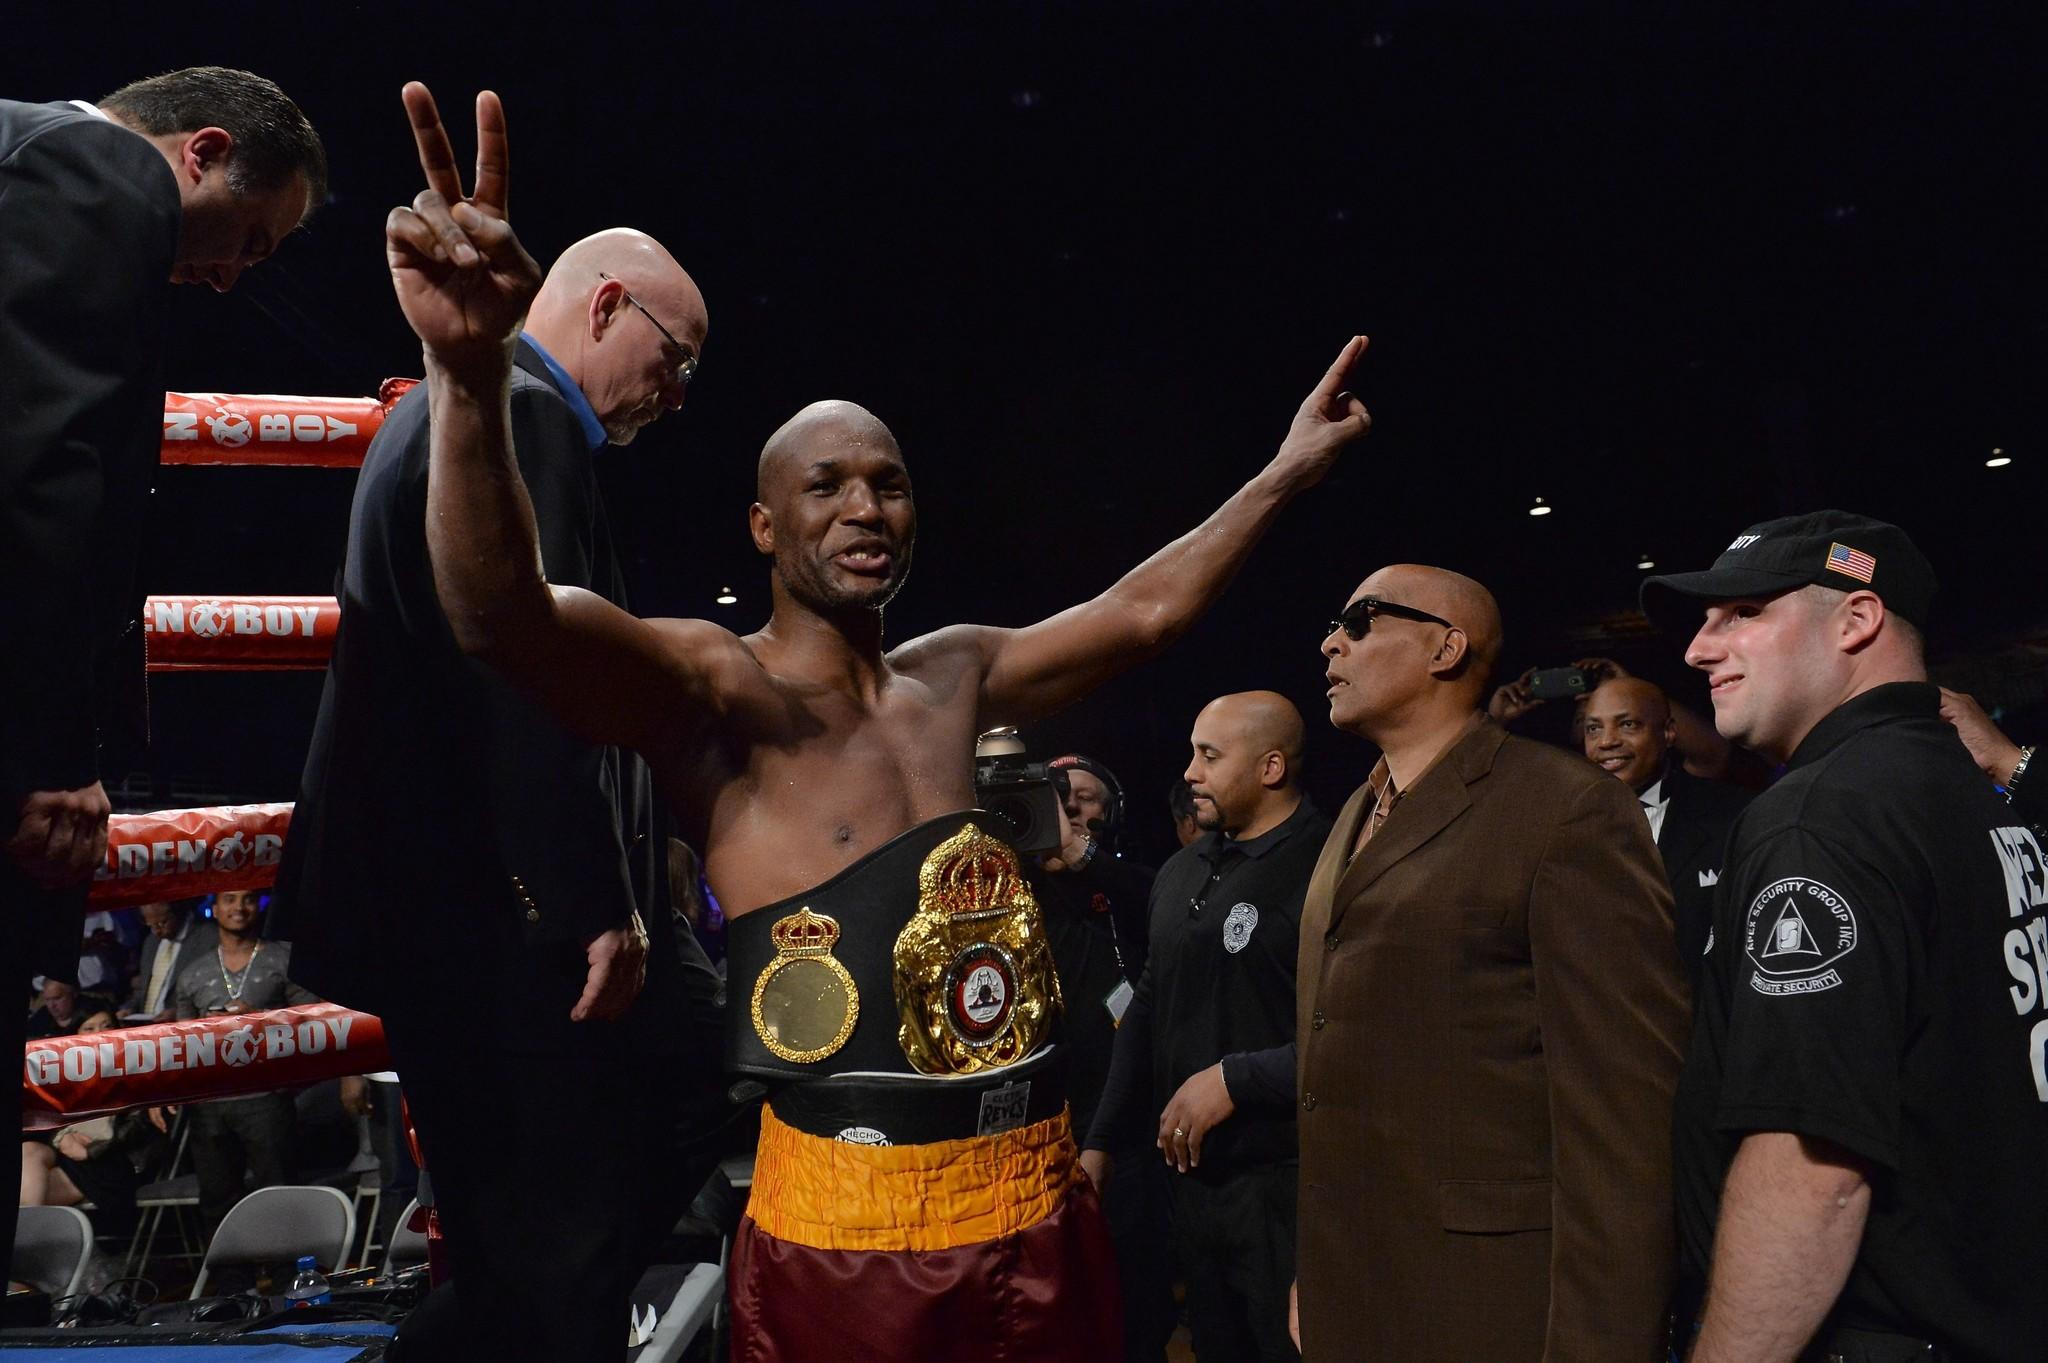 Bernard Hopkins celebrates after his victory over Beibut Shumenov on Saturday for the WBA and IBA light-heavyweight titles.